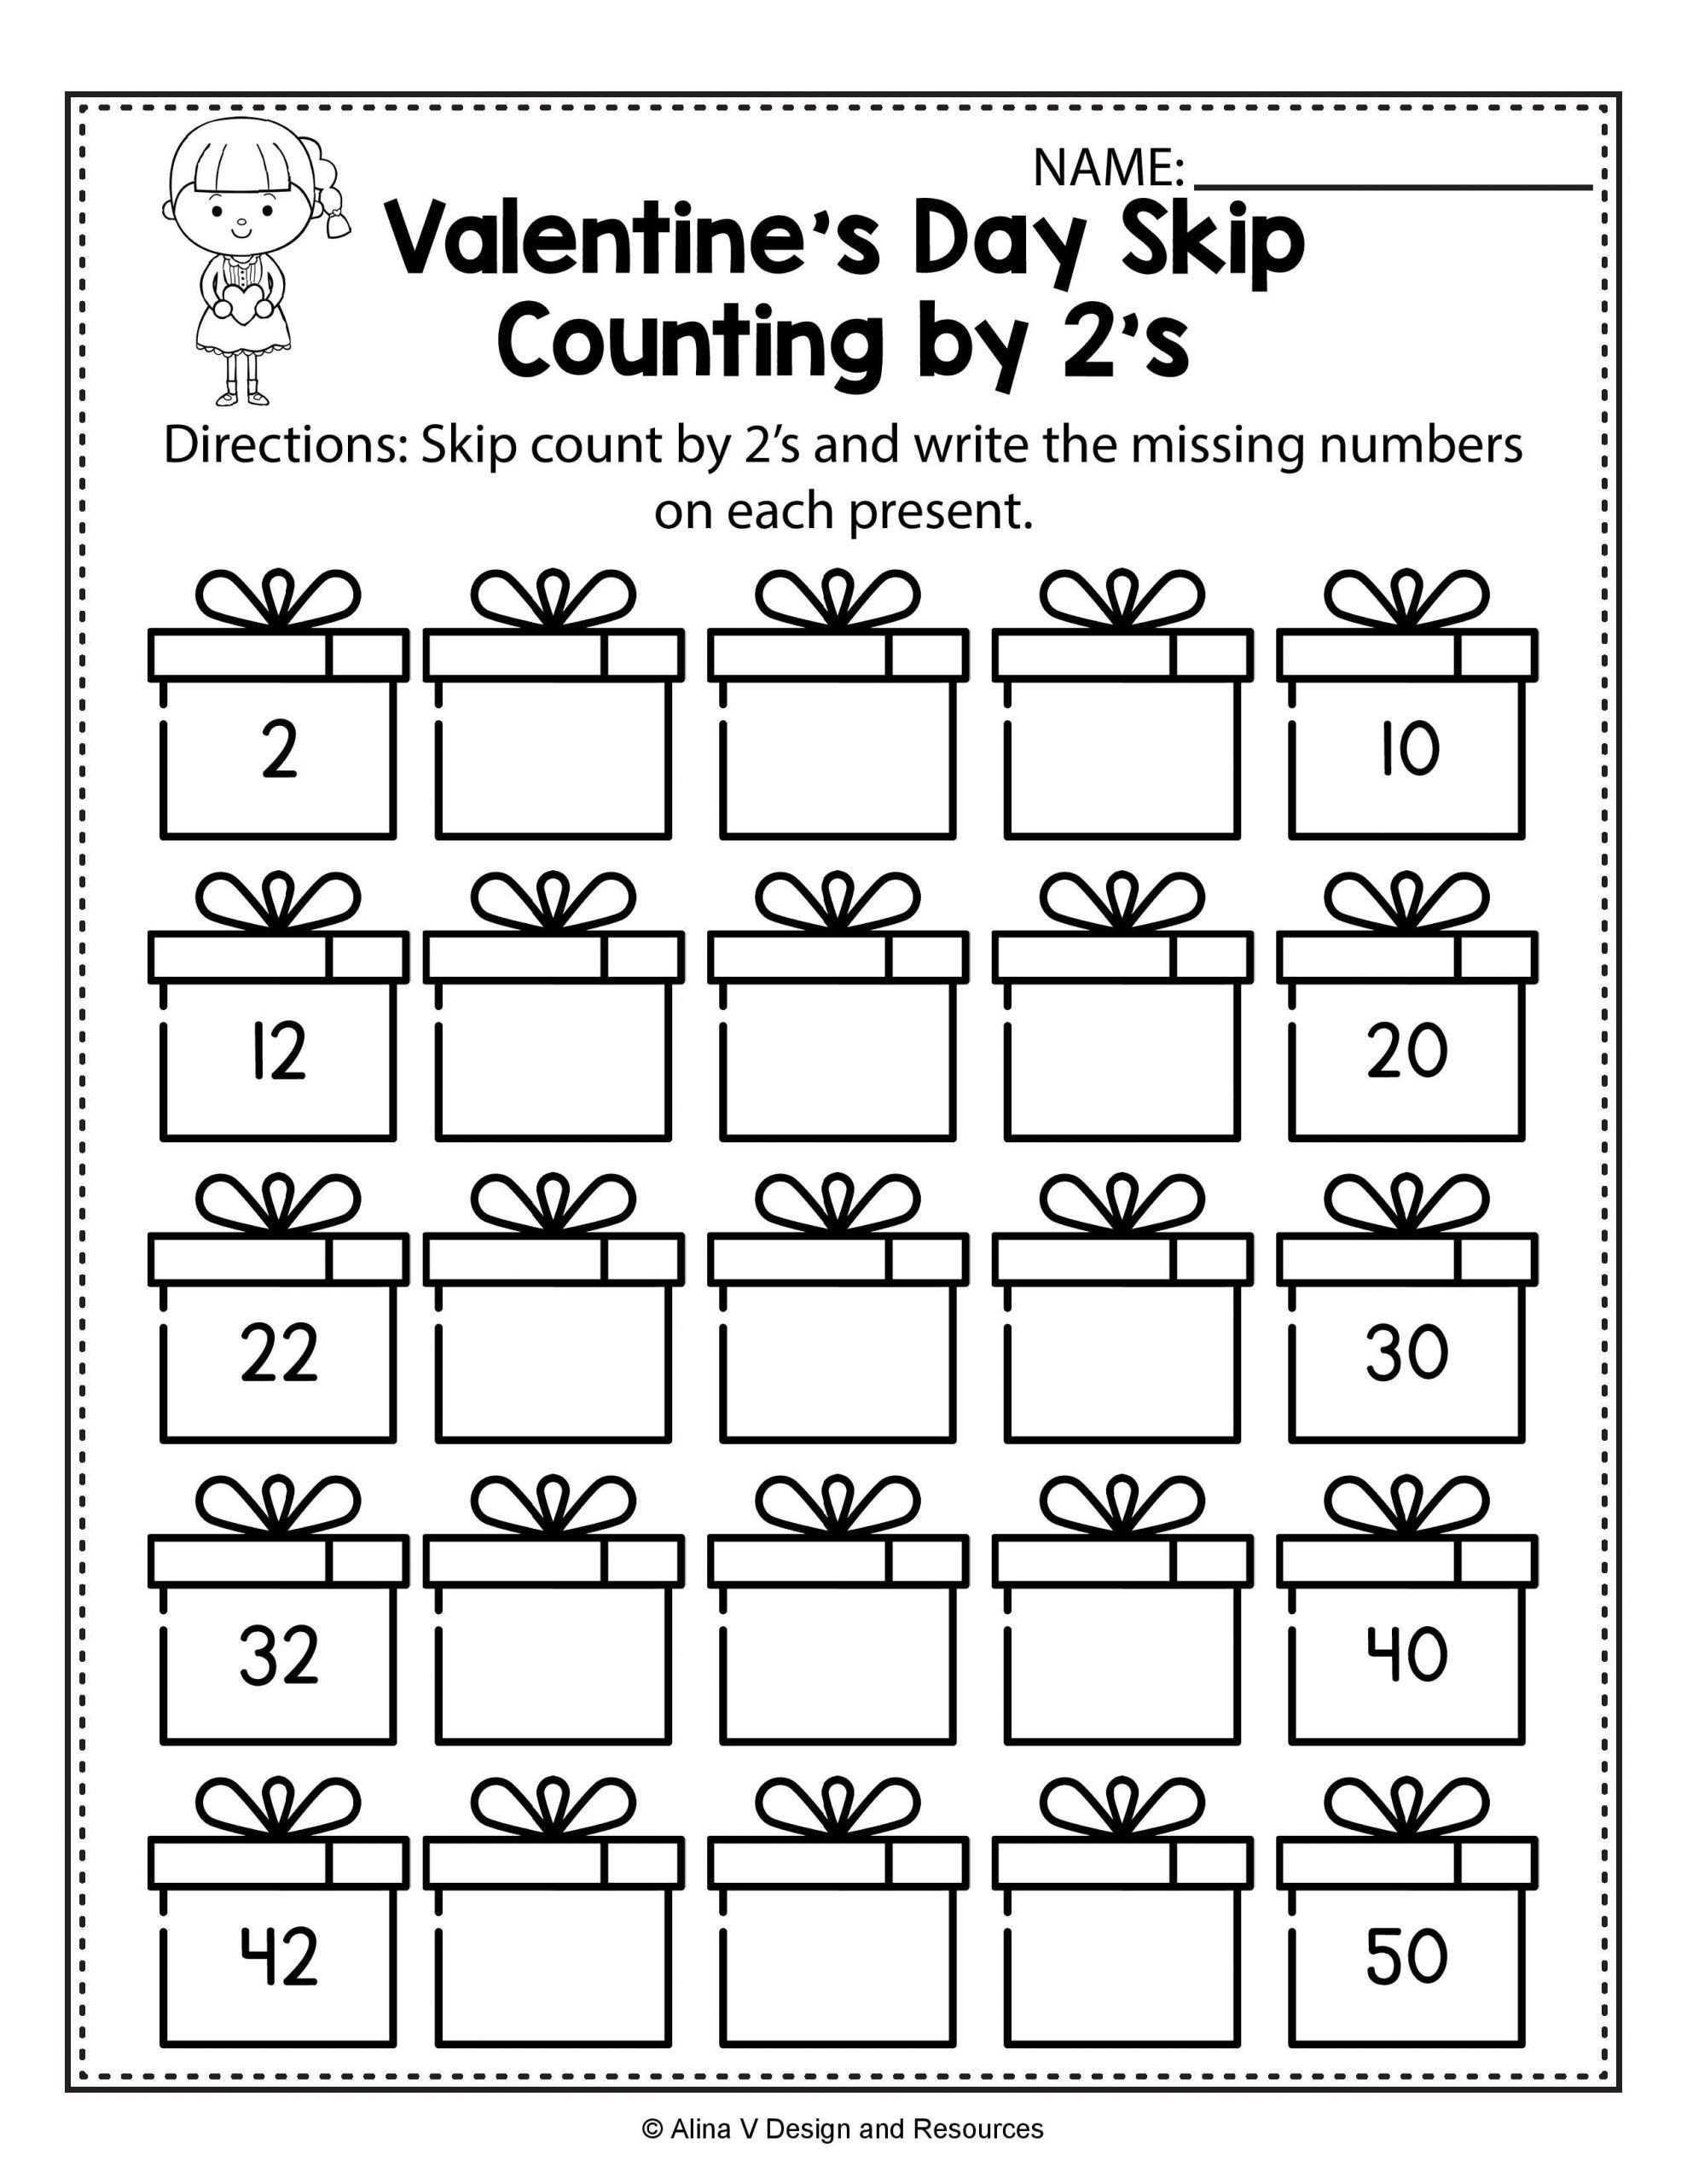 Kindergarten Valentine Math Worksheets Kindergarten Math Worksheets Morning Work Valentine S Day